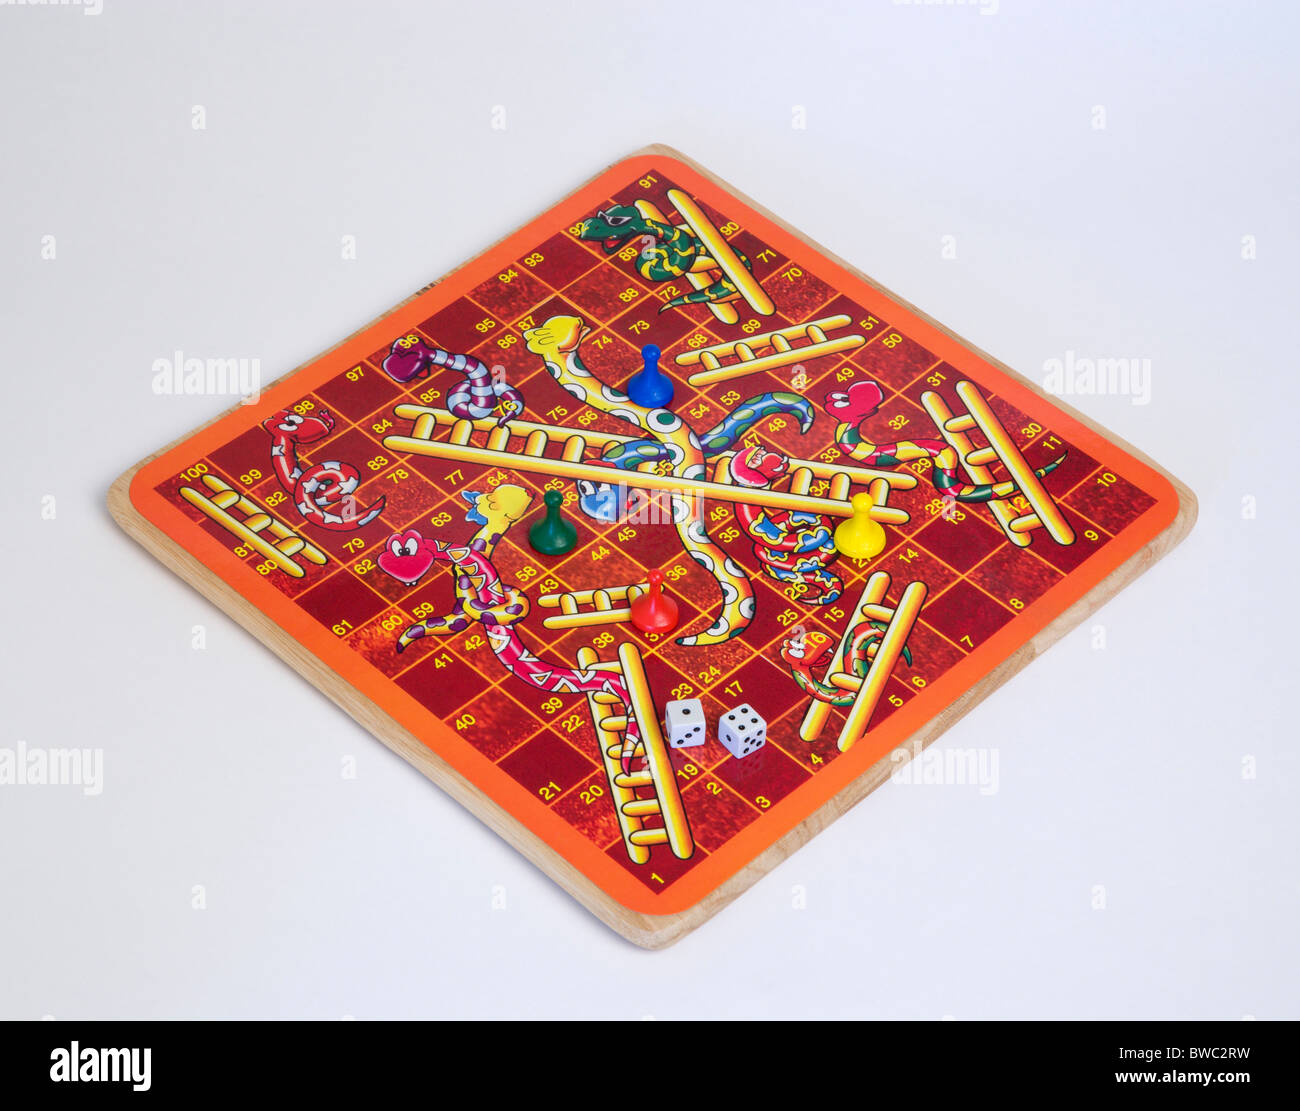 Toys, Games, Board Game, Snakes and Ladders board game with dice and counters for children against a white background. - Stock Image